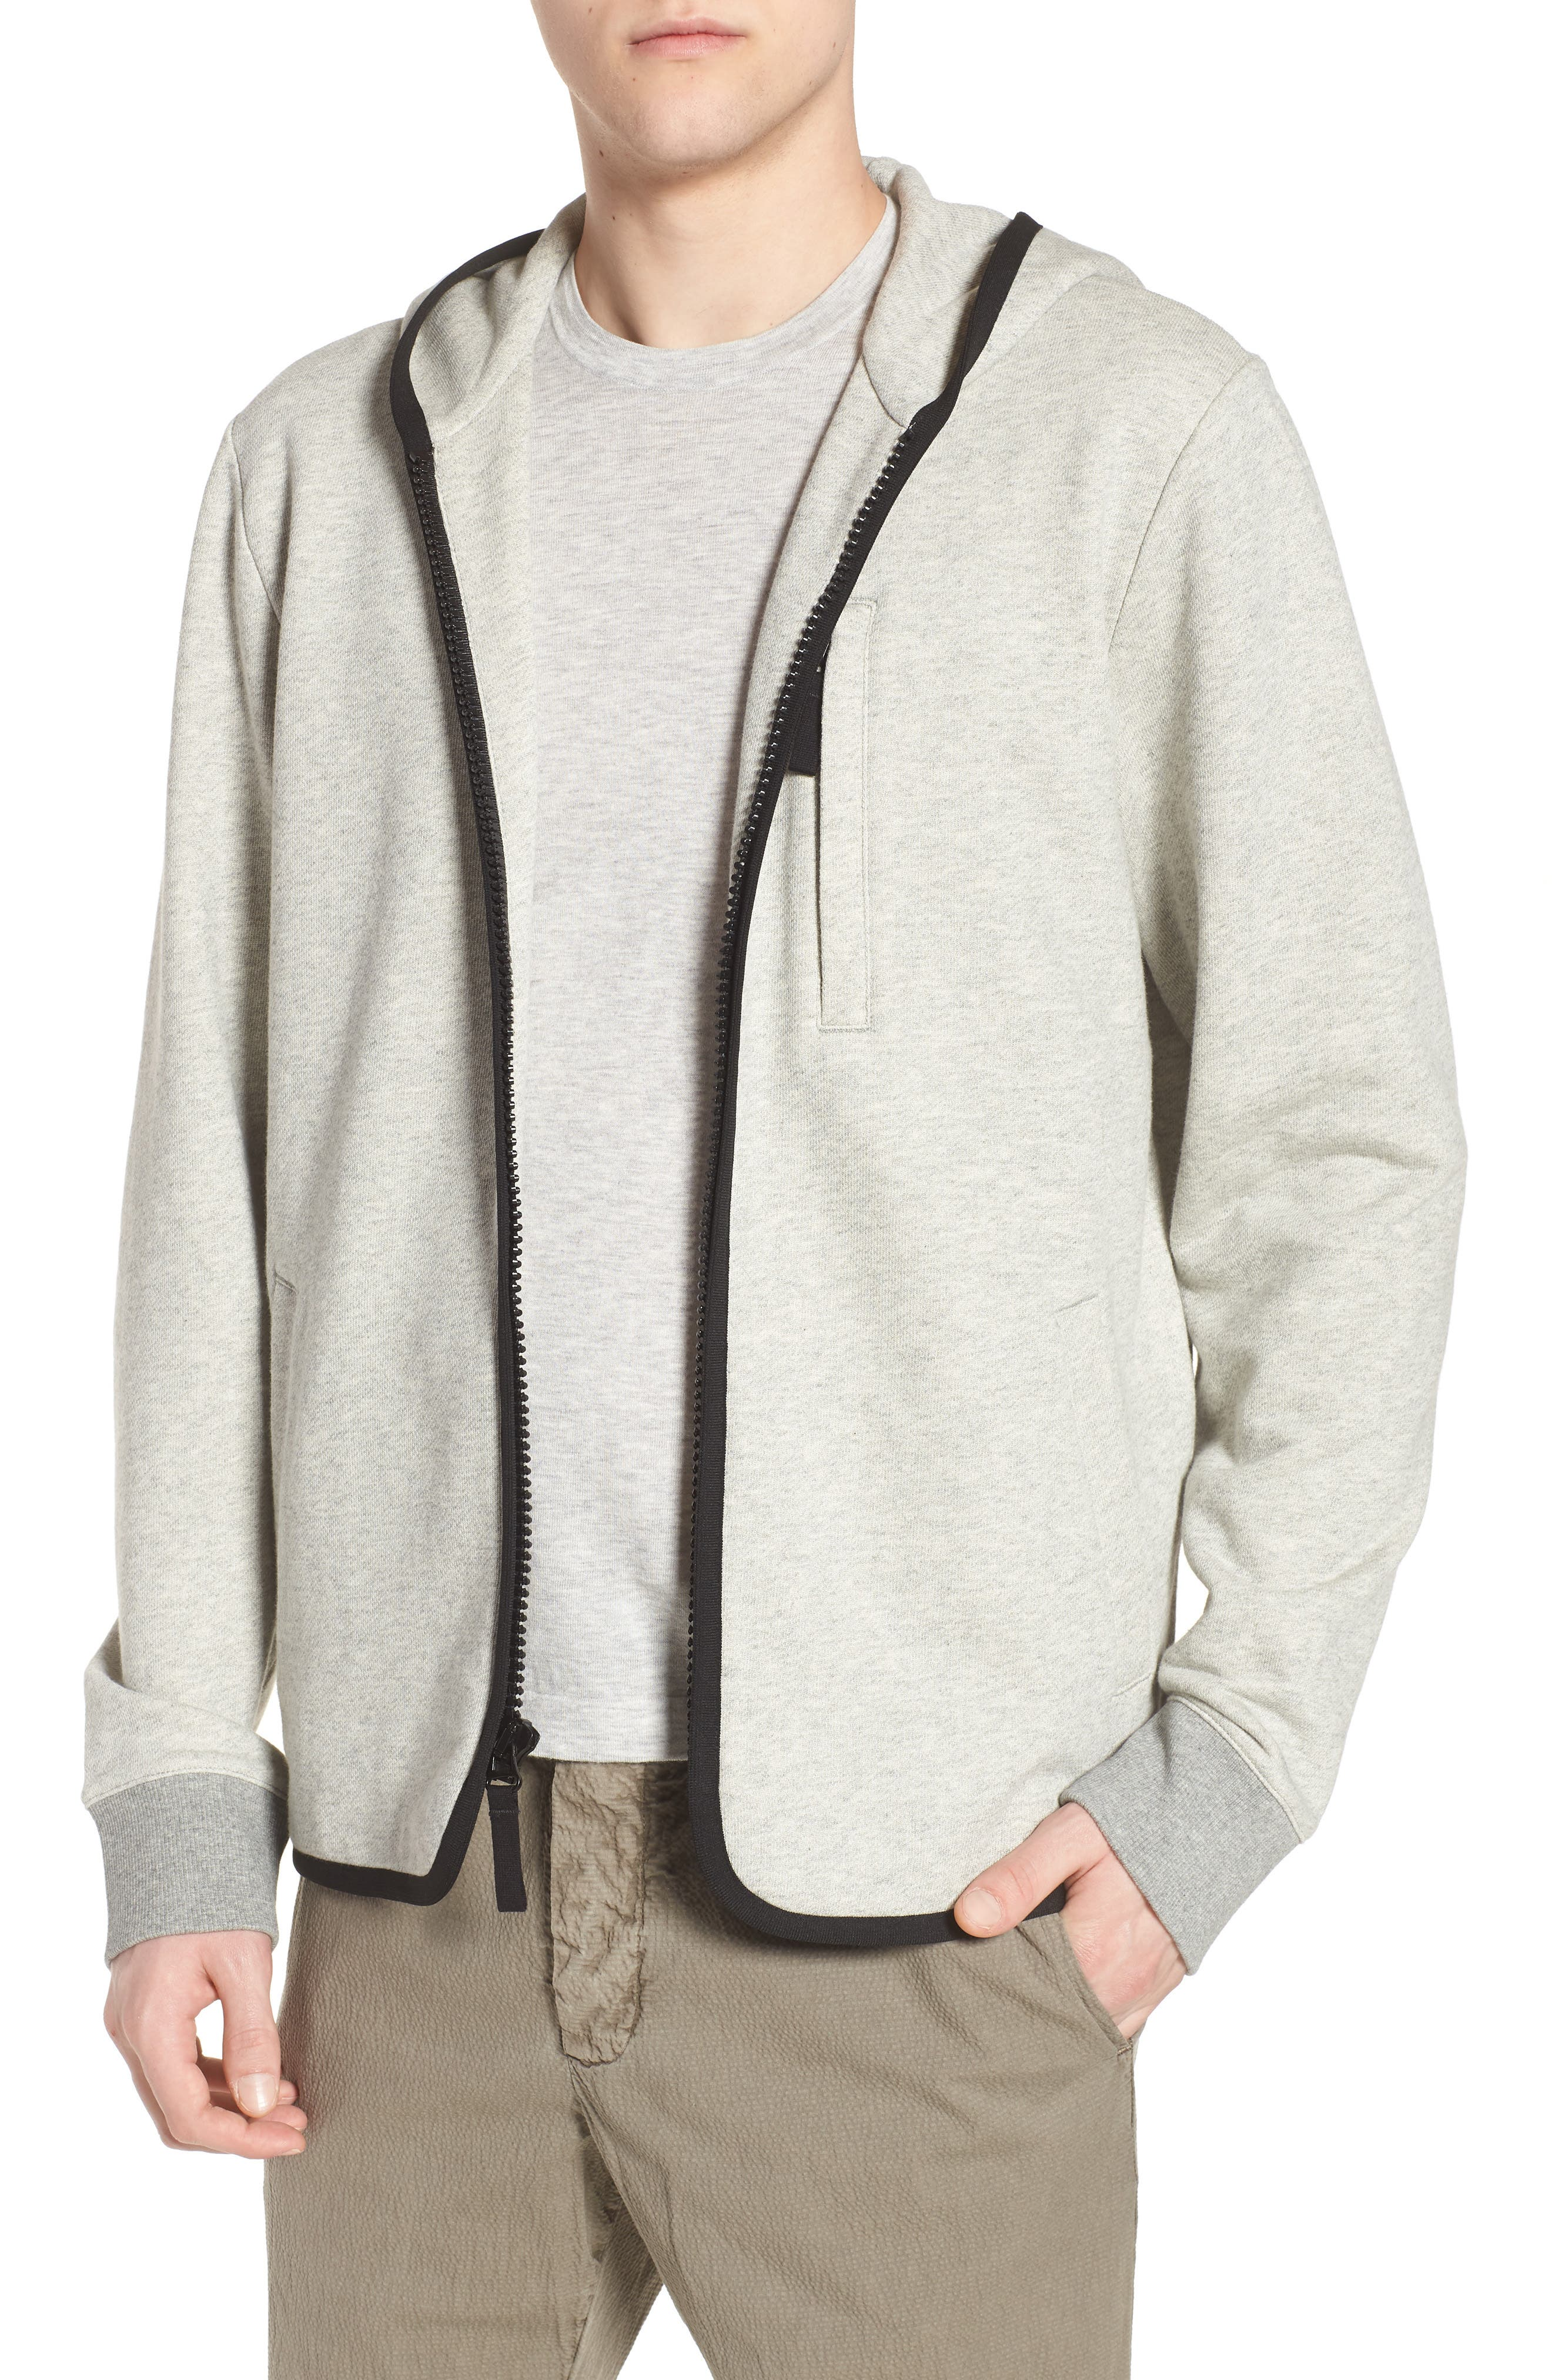 French Terry Zip Hoodie,                         Main,                         color, Heather Grey/ Black